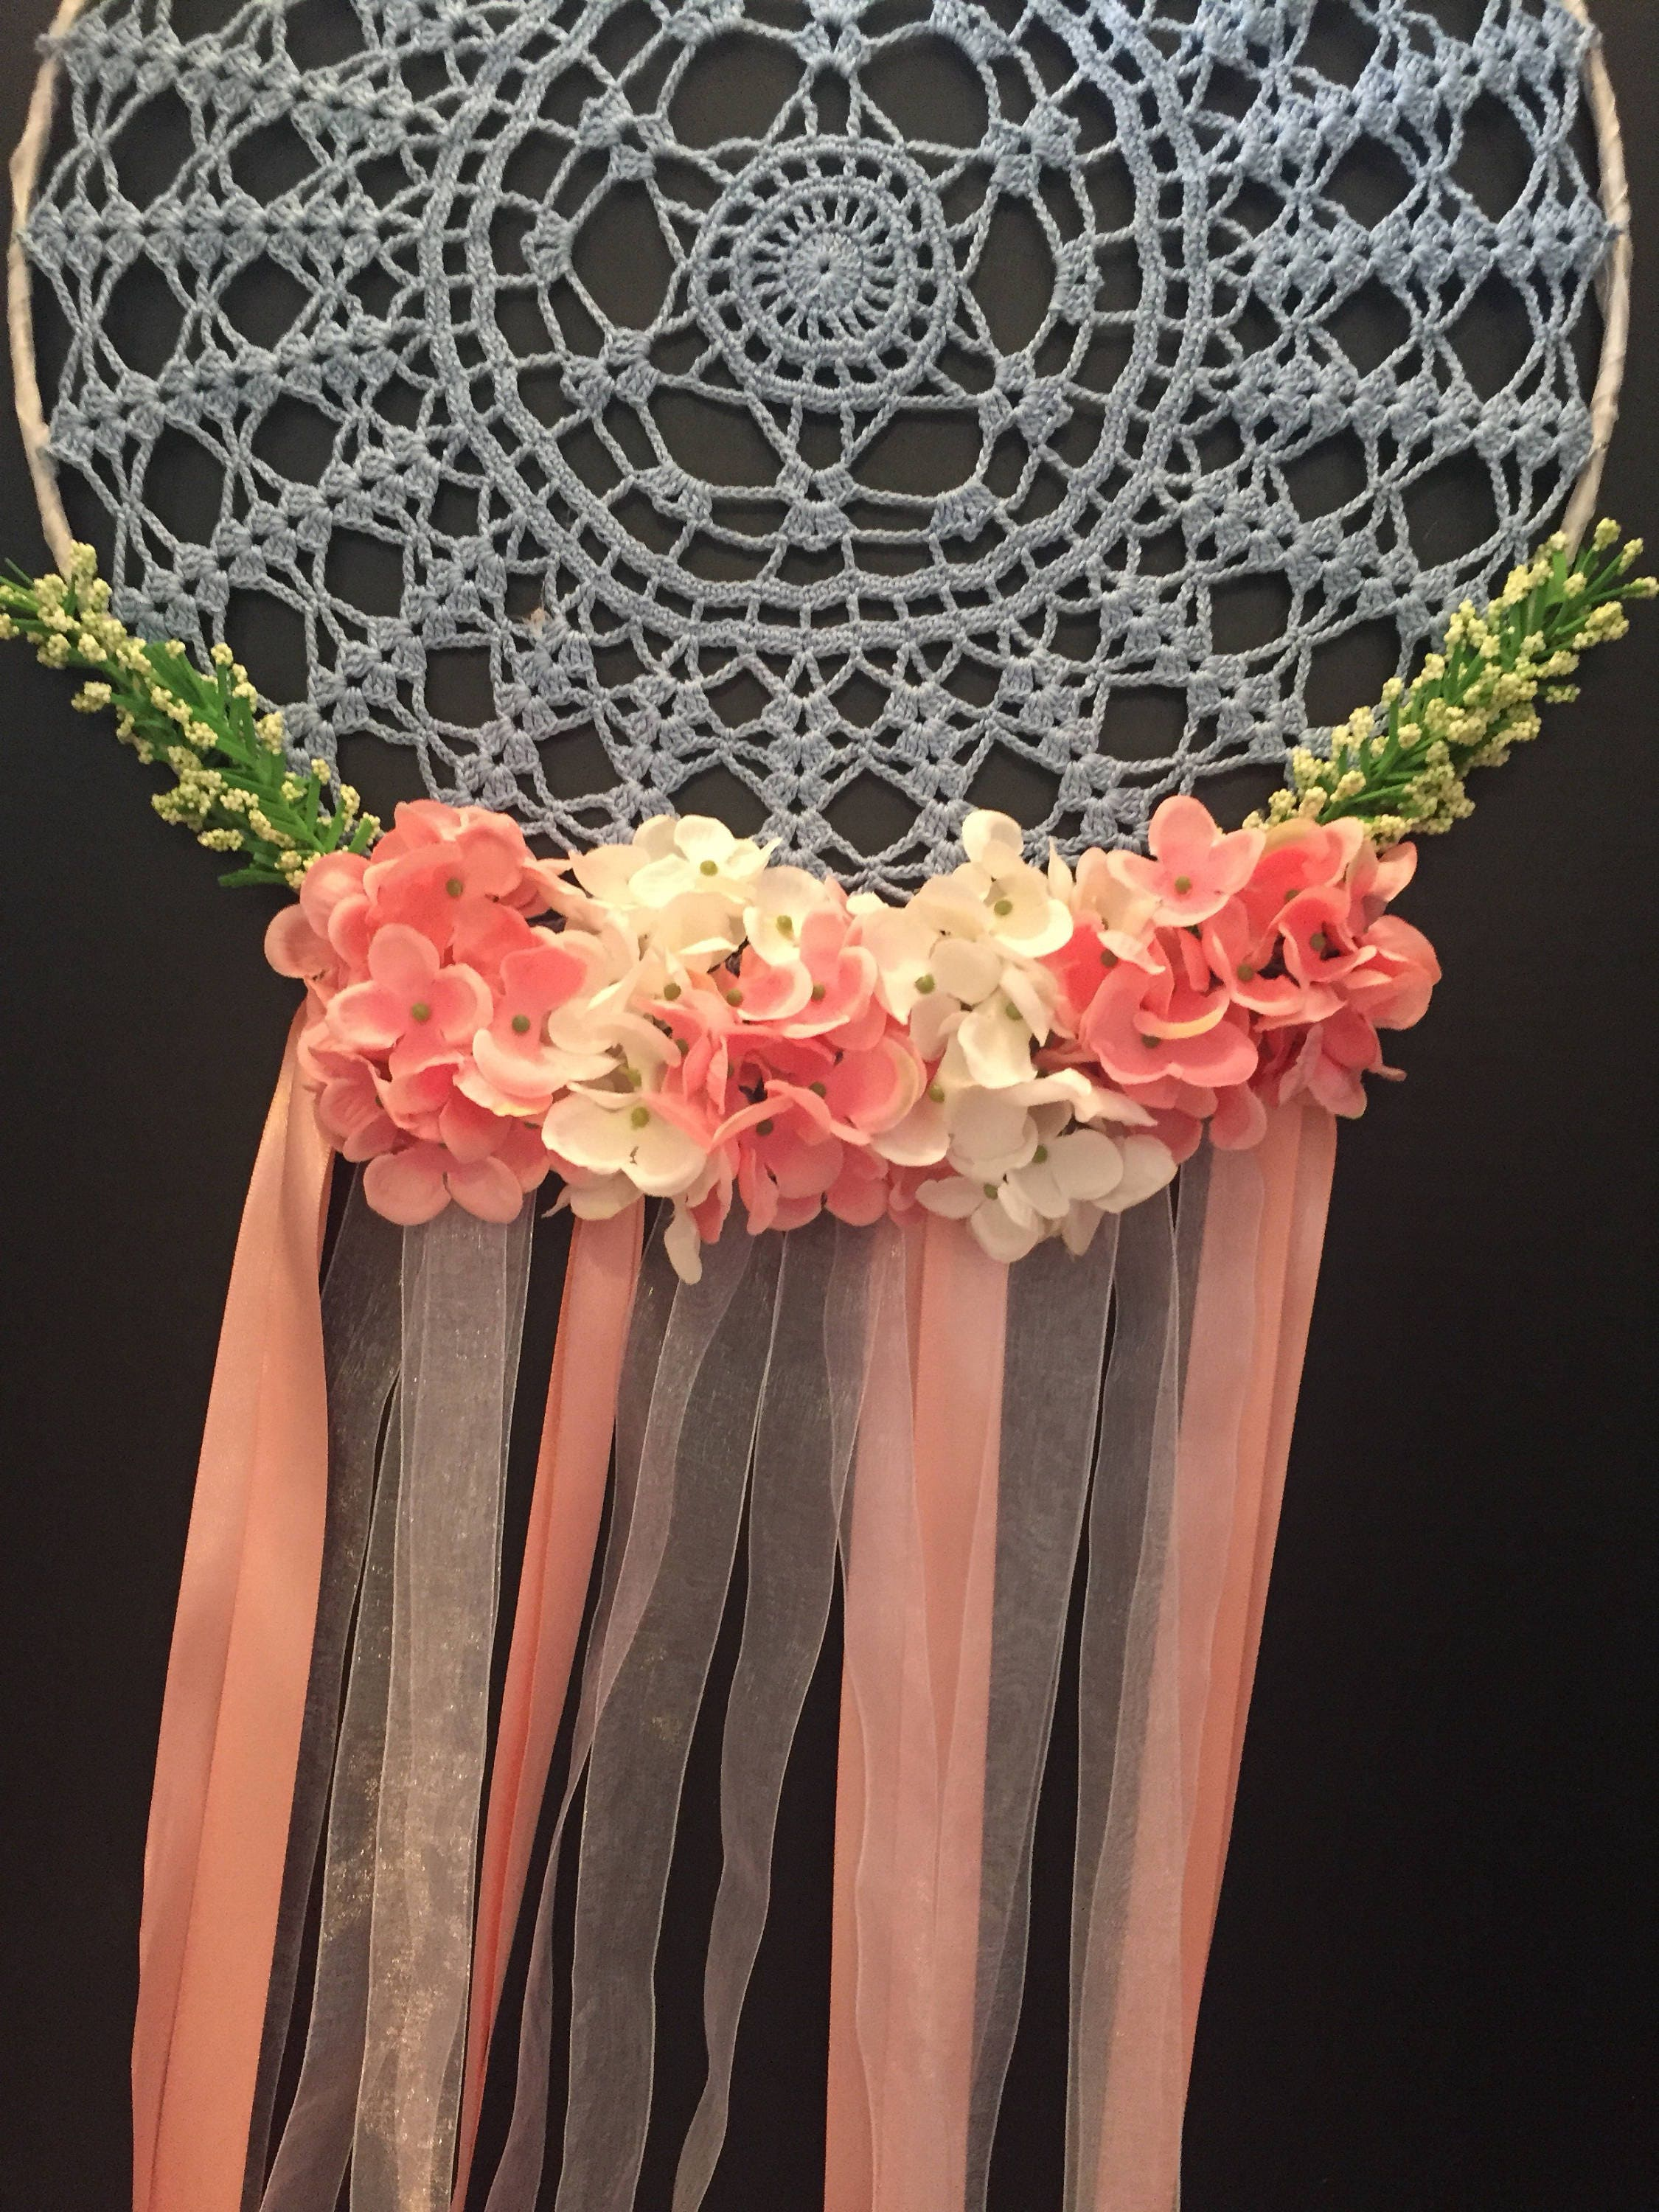 Honeymoon Doily Dreamcatcher Wedding Decor Floral Dreamcatcher